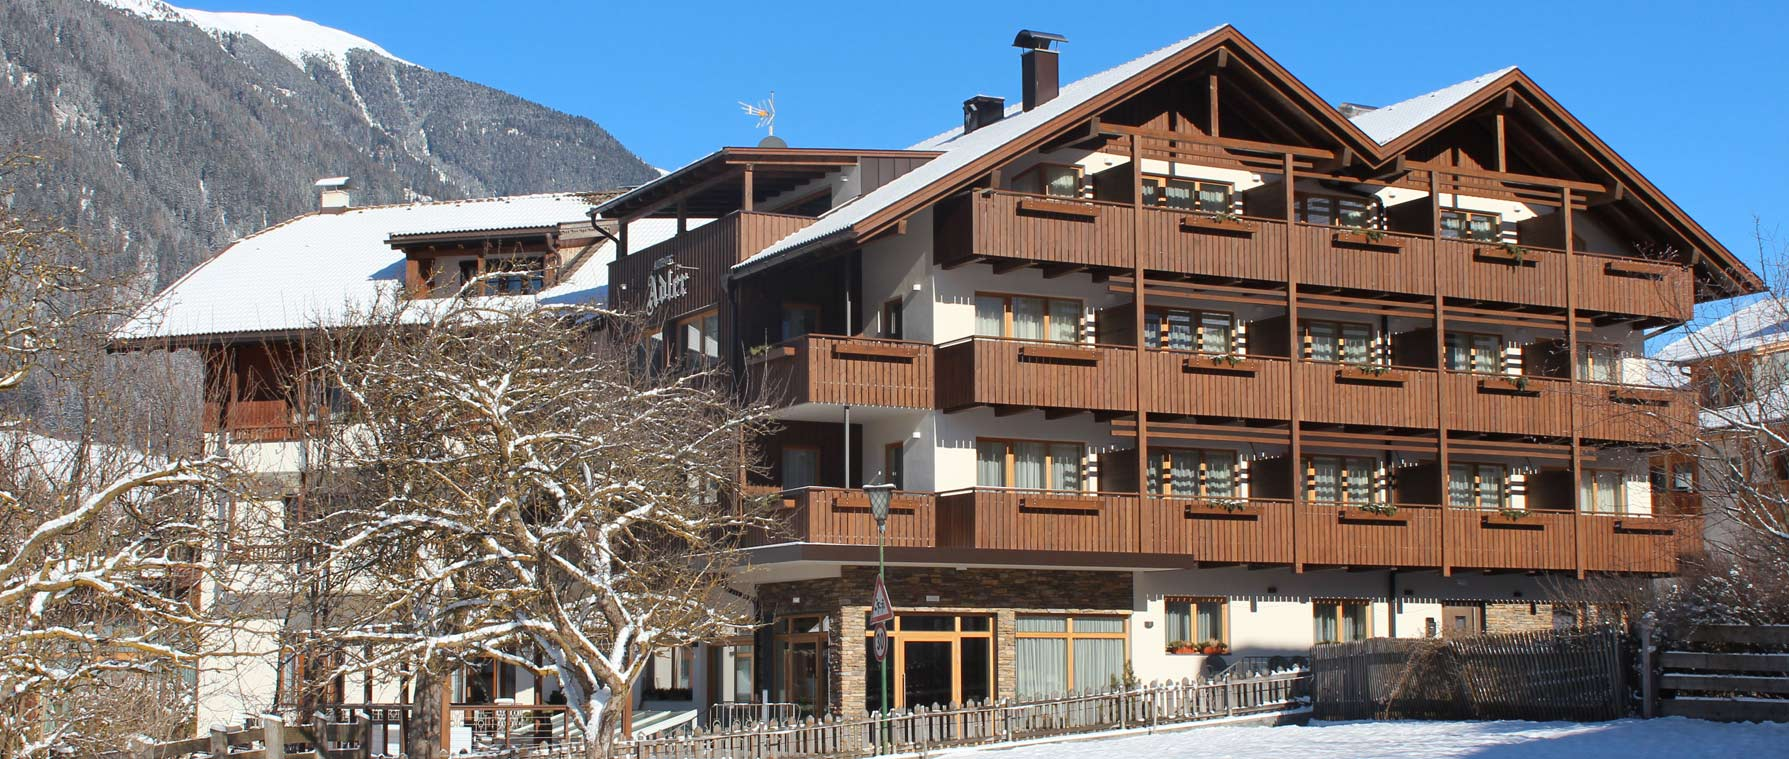 Hotel Autentic in Anterselva